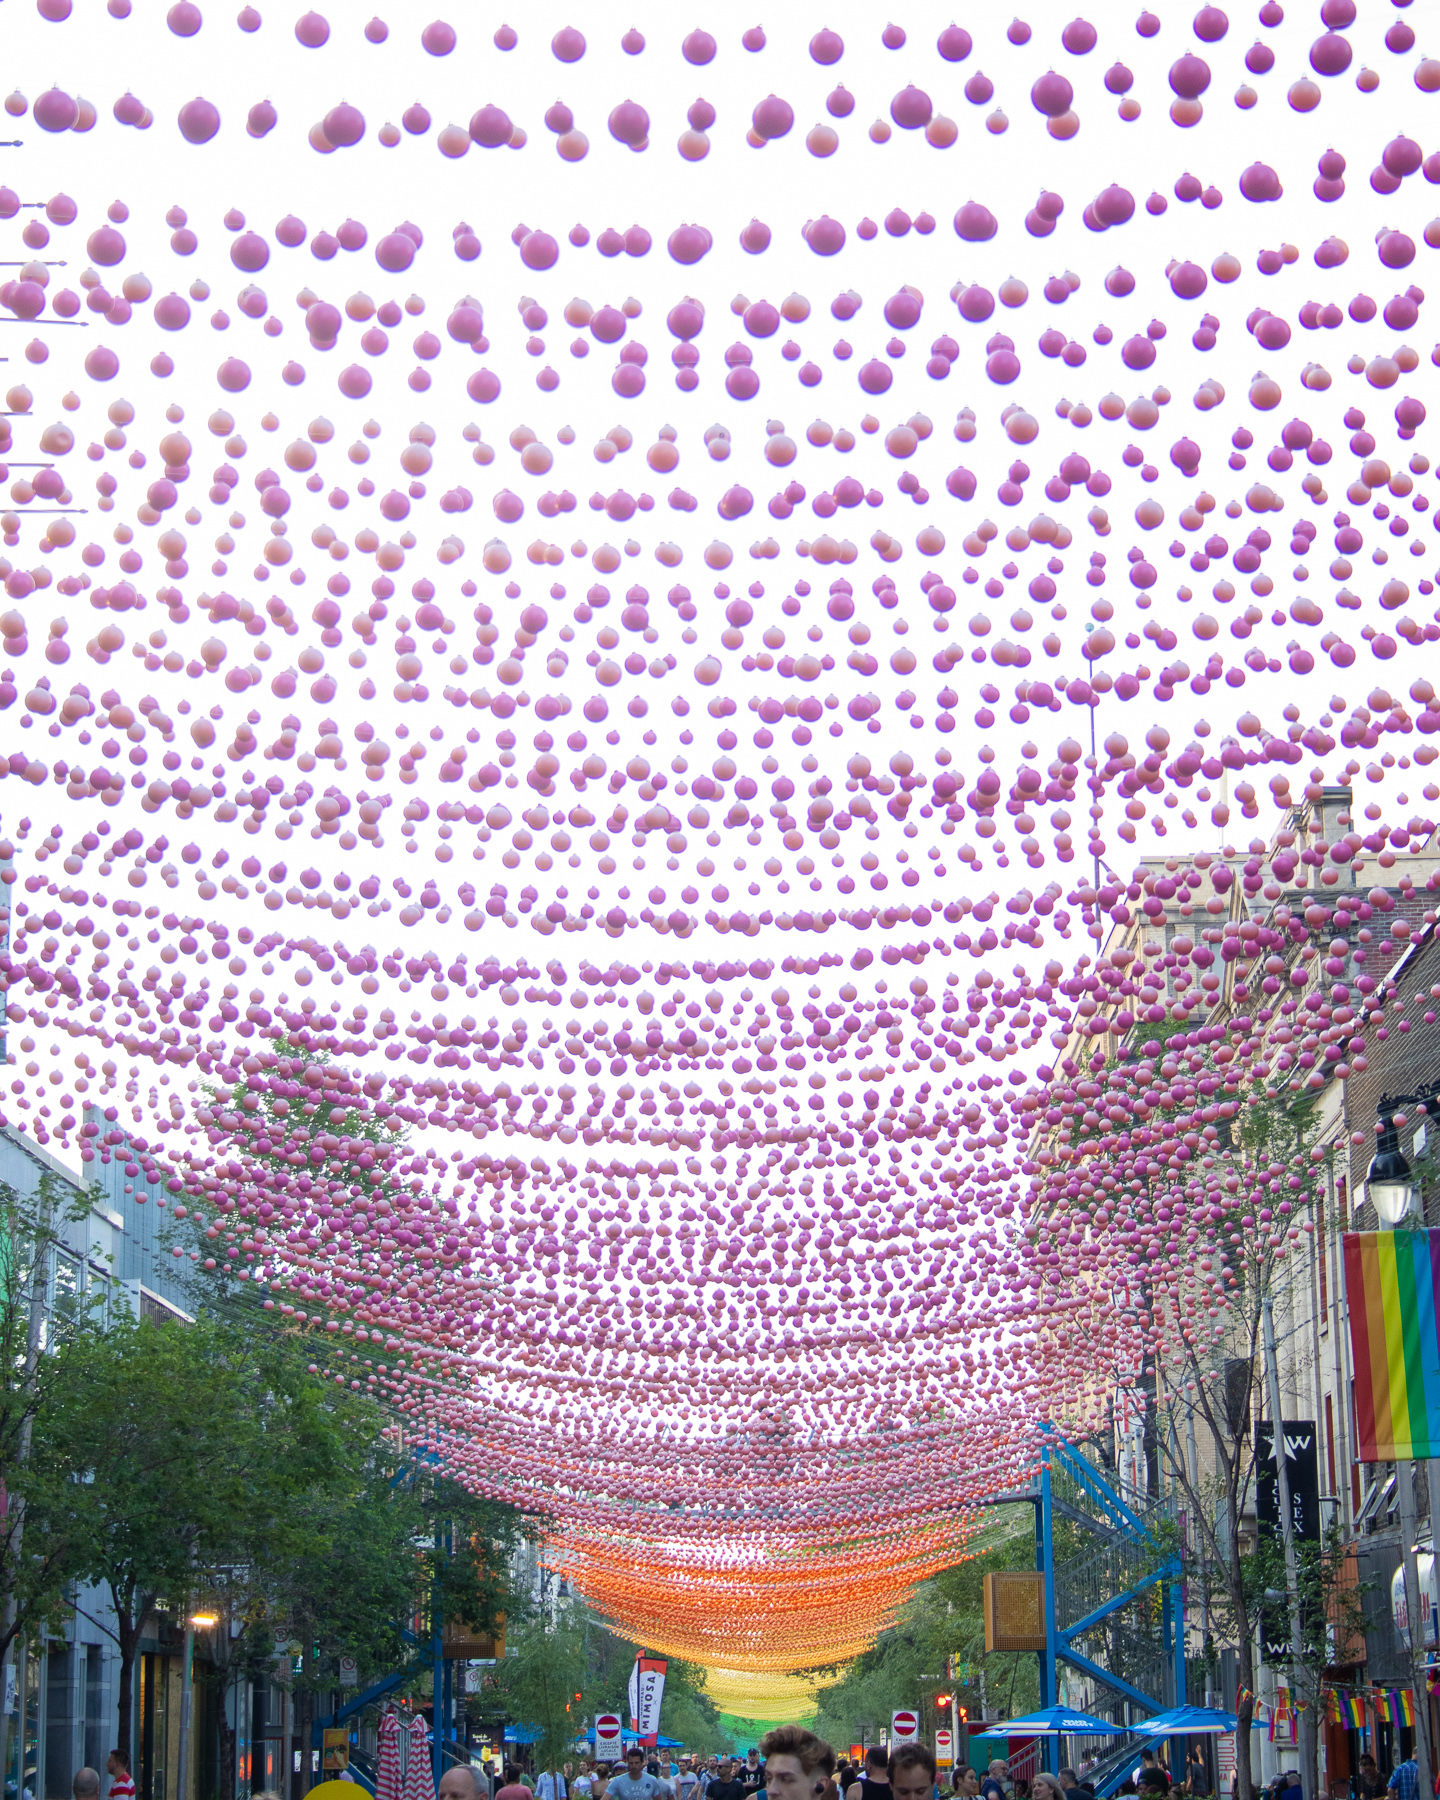 Gay Village had lots of balls.